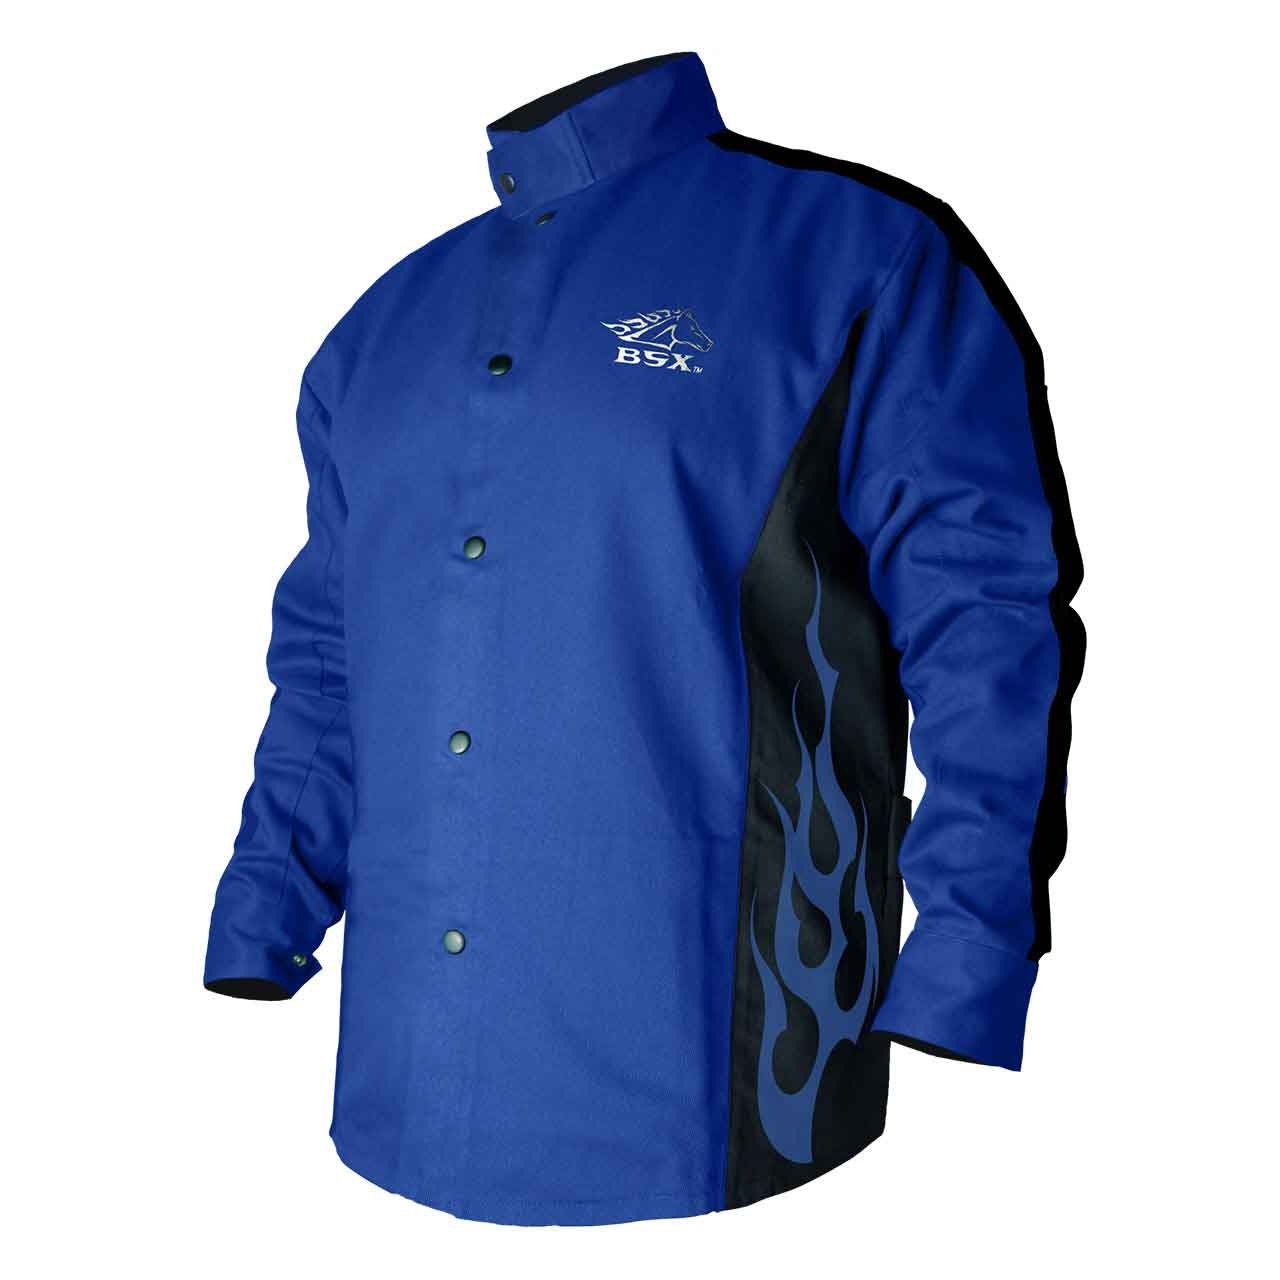 Black Stallion BXRB9C BSX Contoured FR Cotton Welding Jacket, Royal Blue, 4X-LG